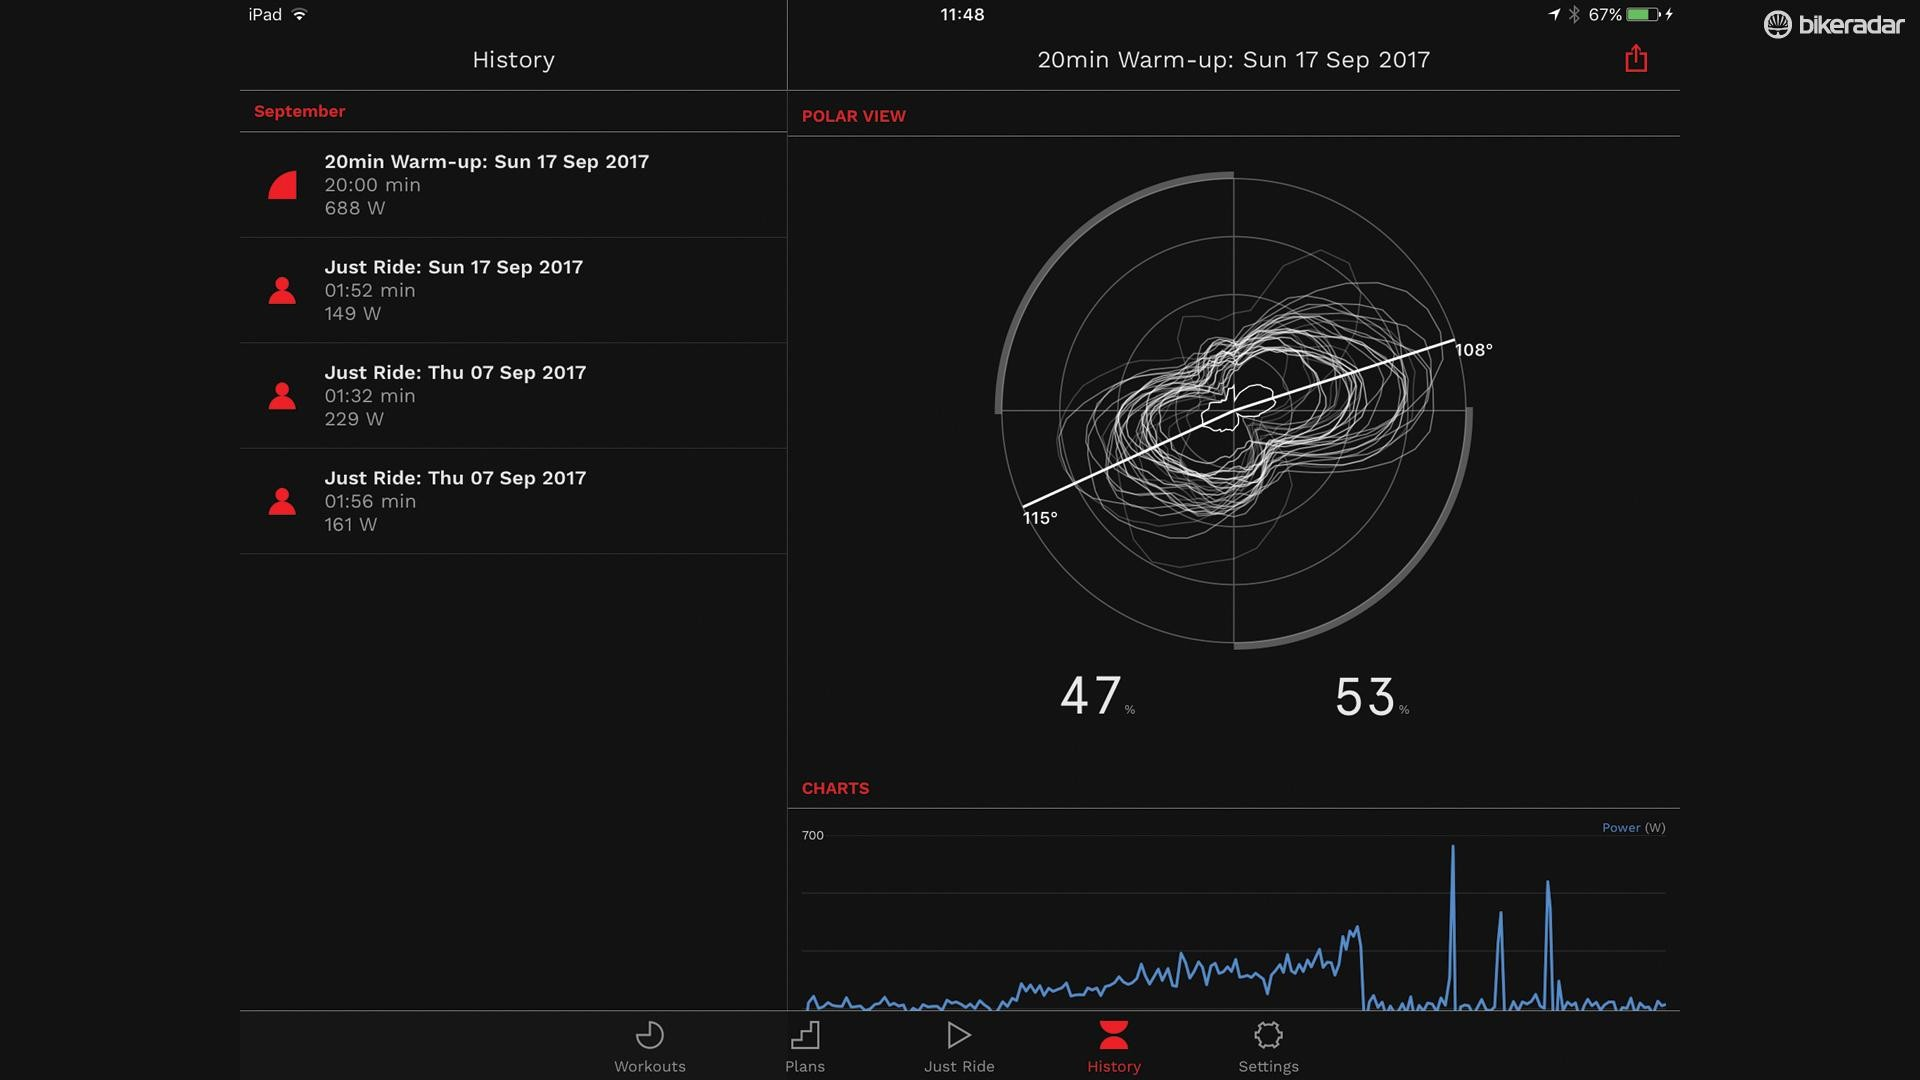 A staple feature of the original Wattbike, polar view comes to the Hub app